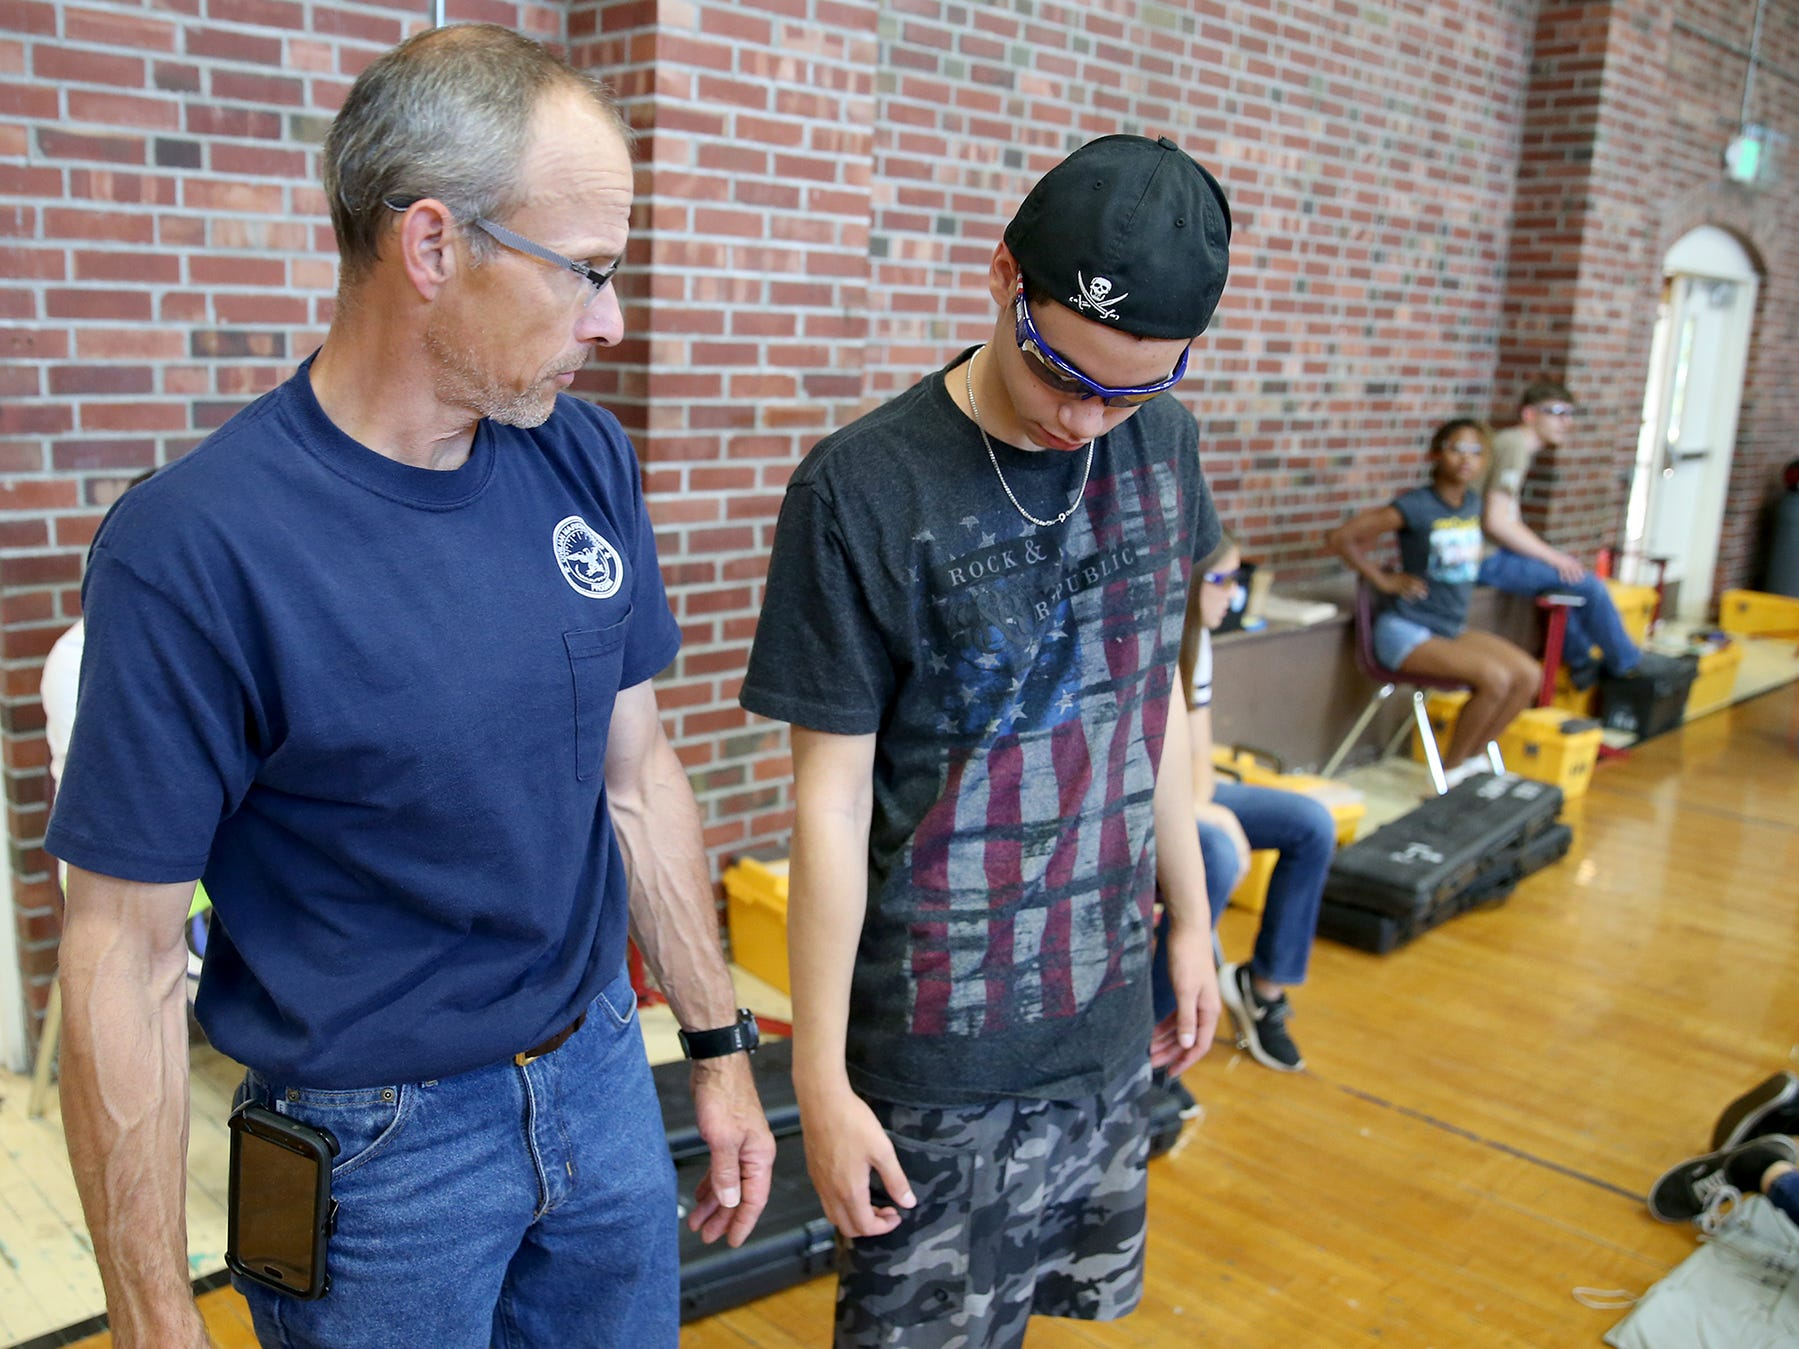 Rifle instructor Jeff Phillips compares the leg length of student Braden Brown, 15, to make sure he has the right sized air rifle at the South Kitsap High School NJROTC Wolf Battalion Rifle Camp runs from August 8-10, at the National Guard Armory in Port Orchard.The camp teaches rifle safety, and shooting technics.